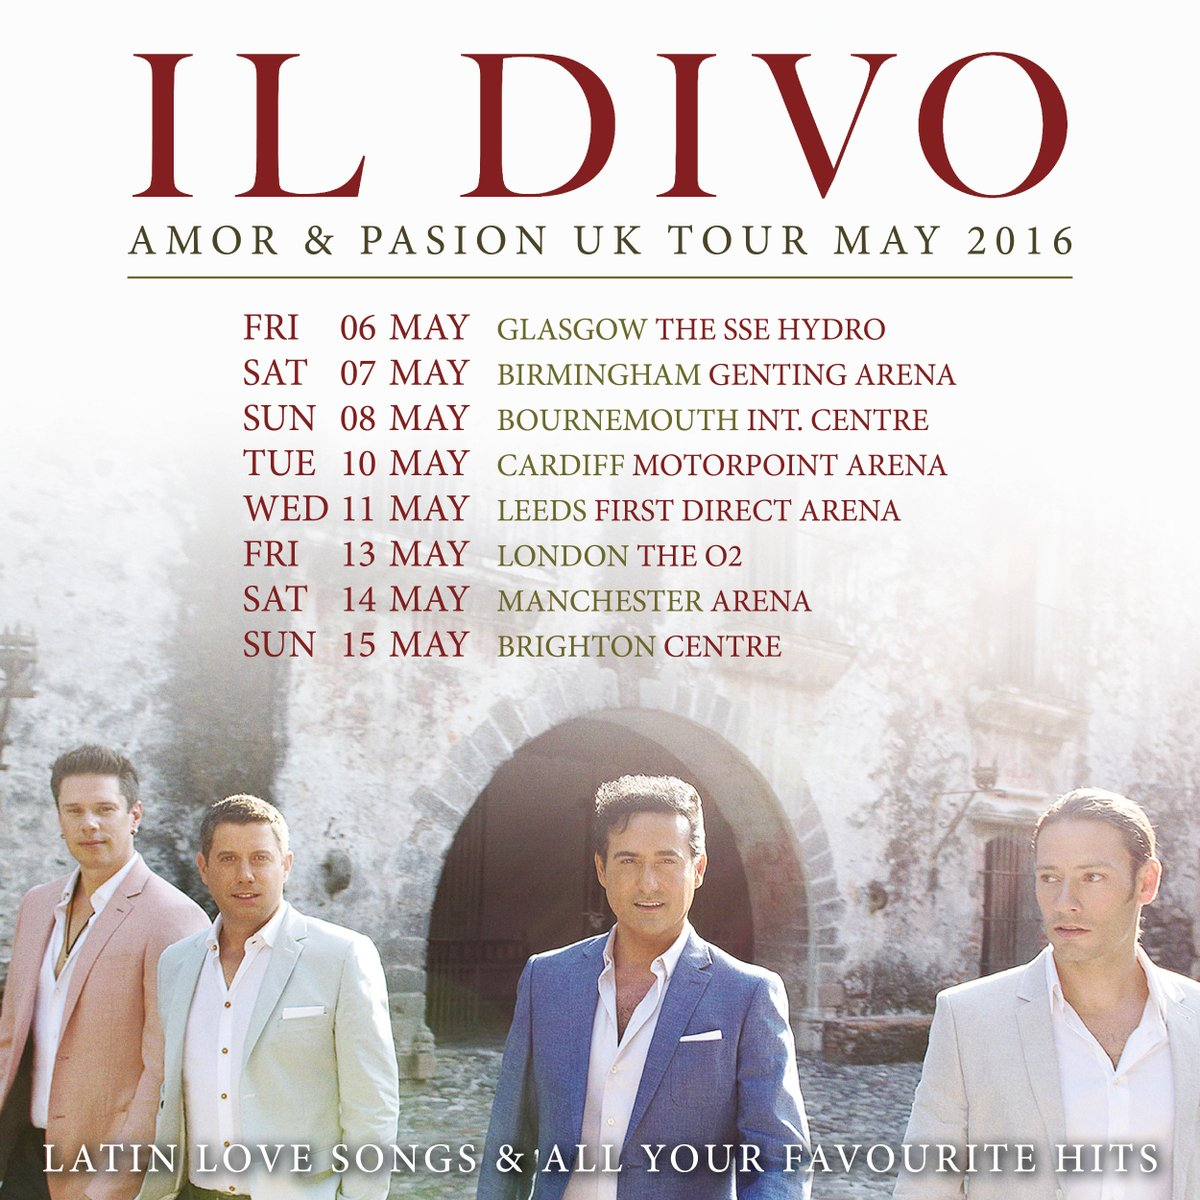 Il divo on twitter uk il divo are taking the amor - Il divo tour dates ...